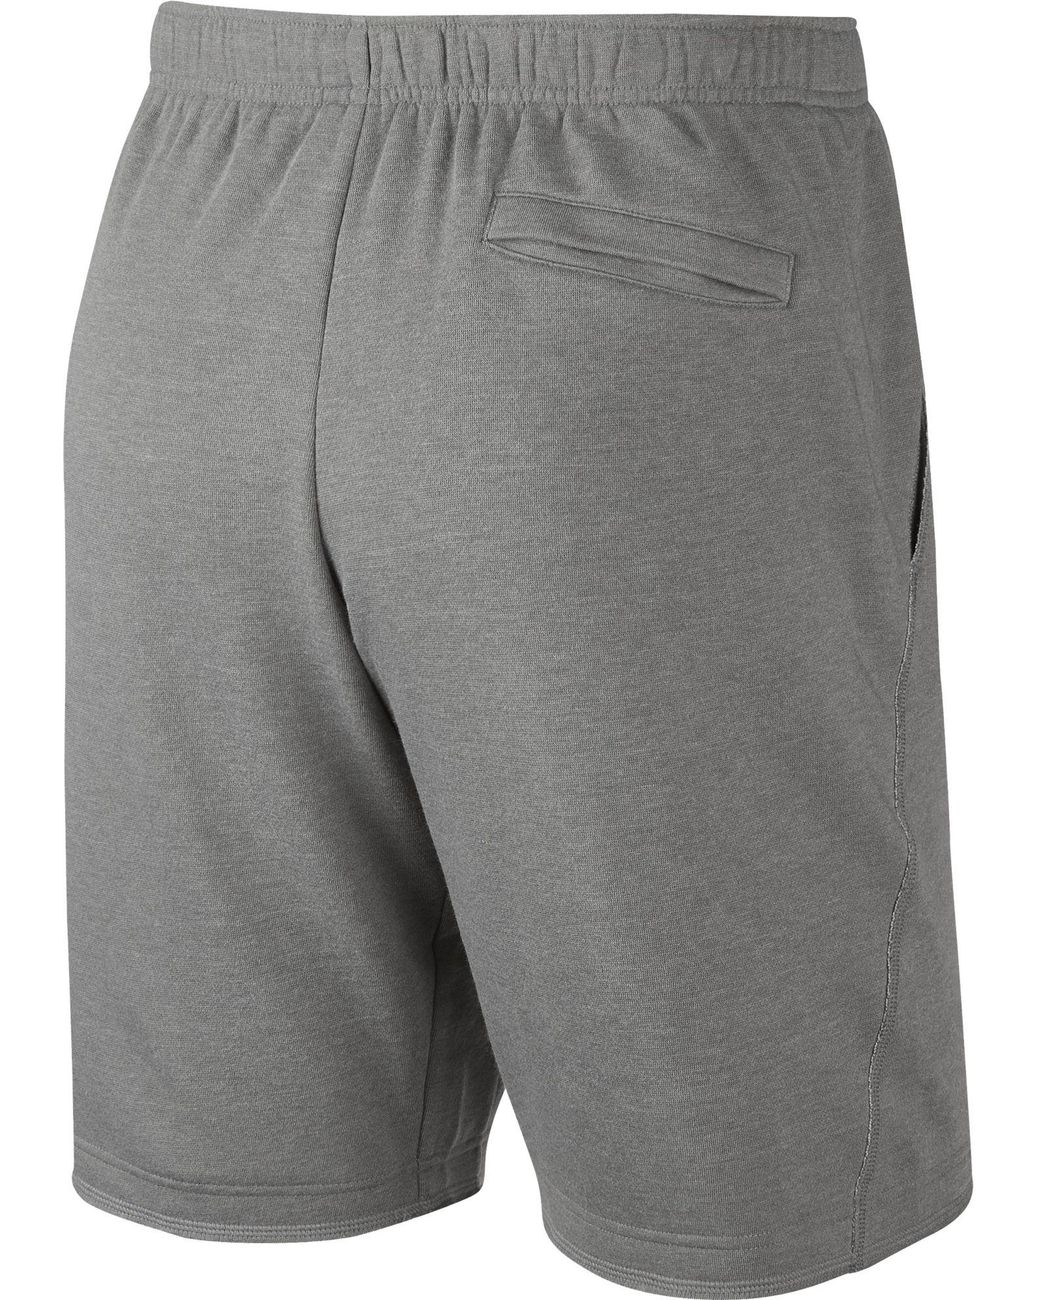 adf896ff8 Lyst - Nike Flux Baseball Shorts in Gray for Men